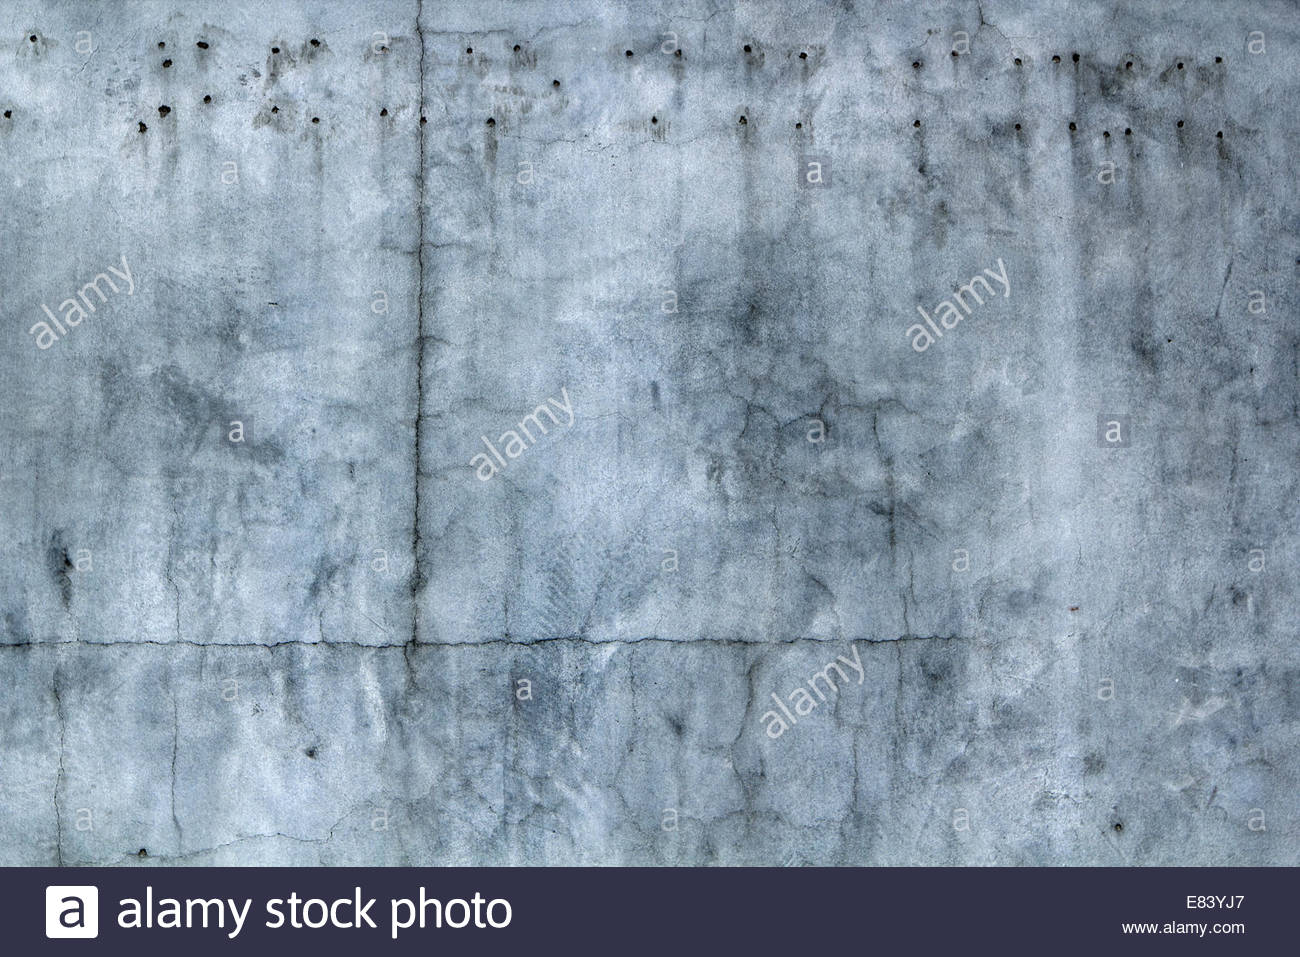 Abstract old aged concrete background texture with cracks, dirt & stains - Stock Image